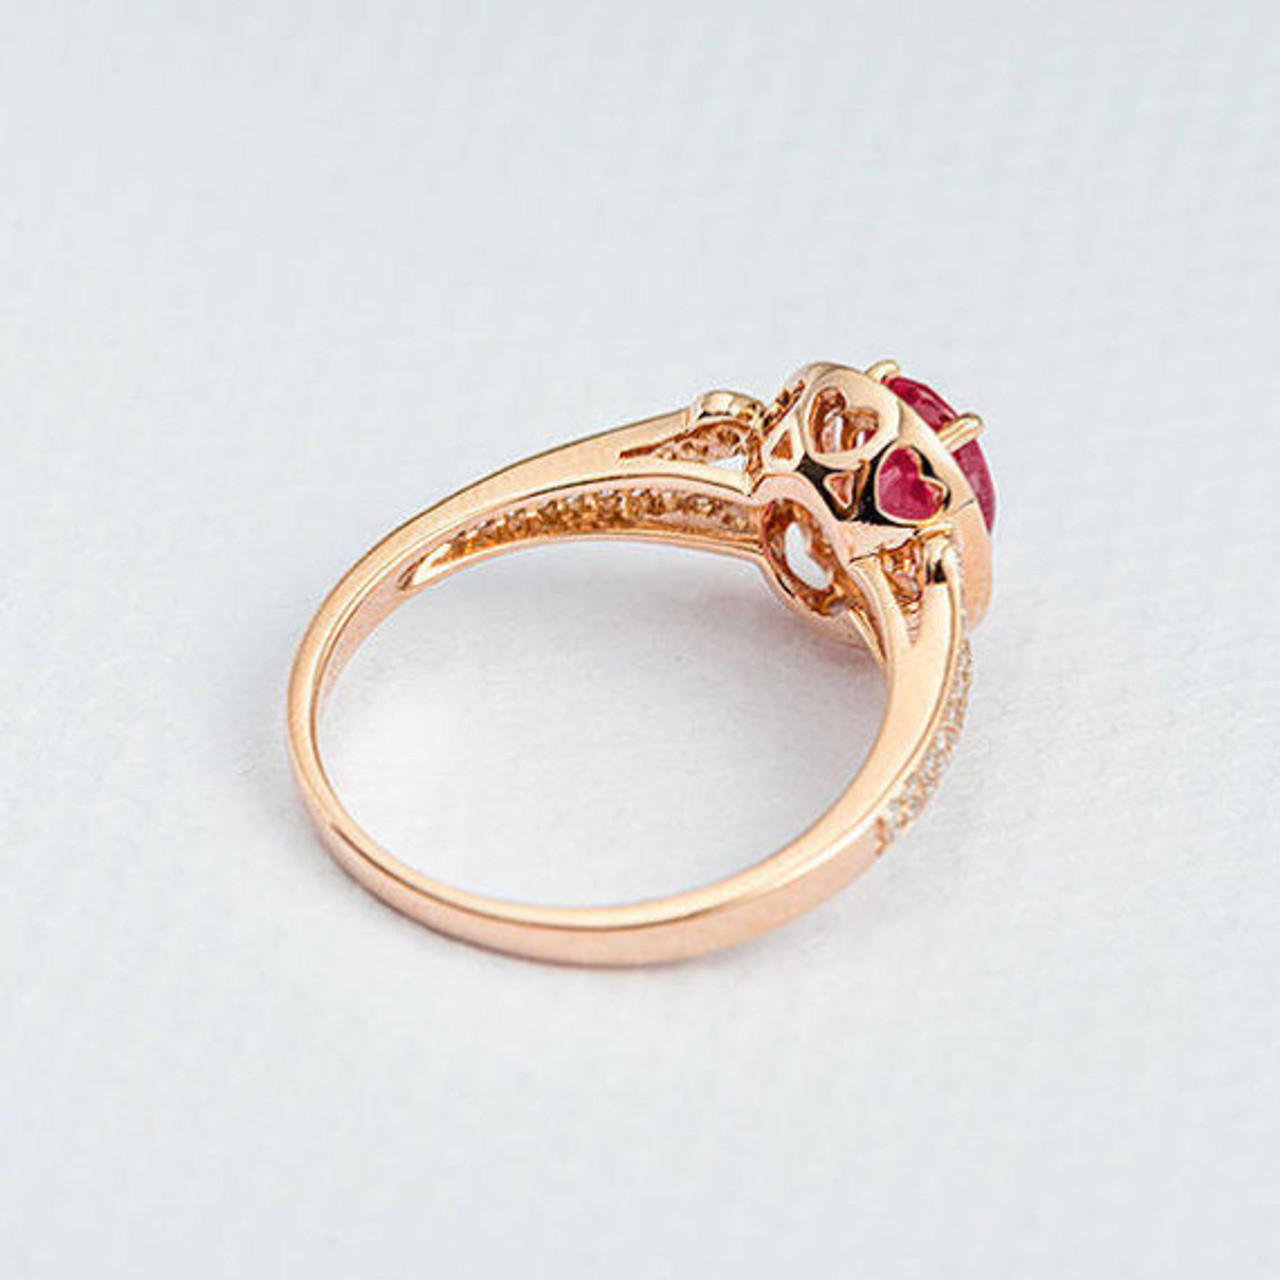 Rose Gold Engagement Ring Oval Cut Ruby Ring With Diamond Split